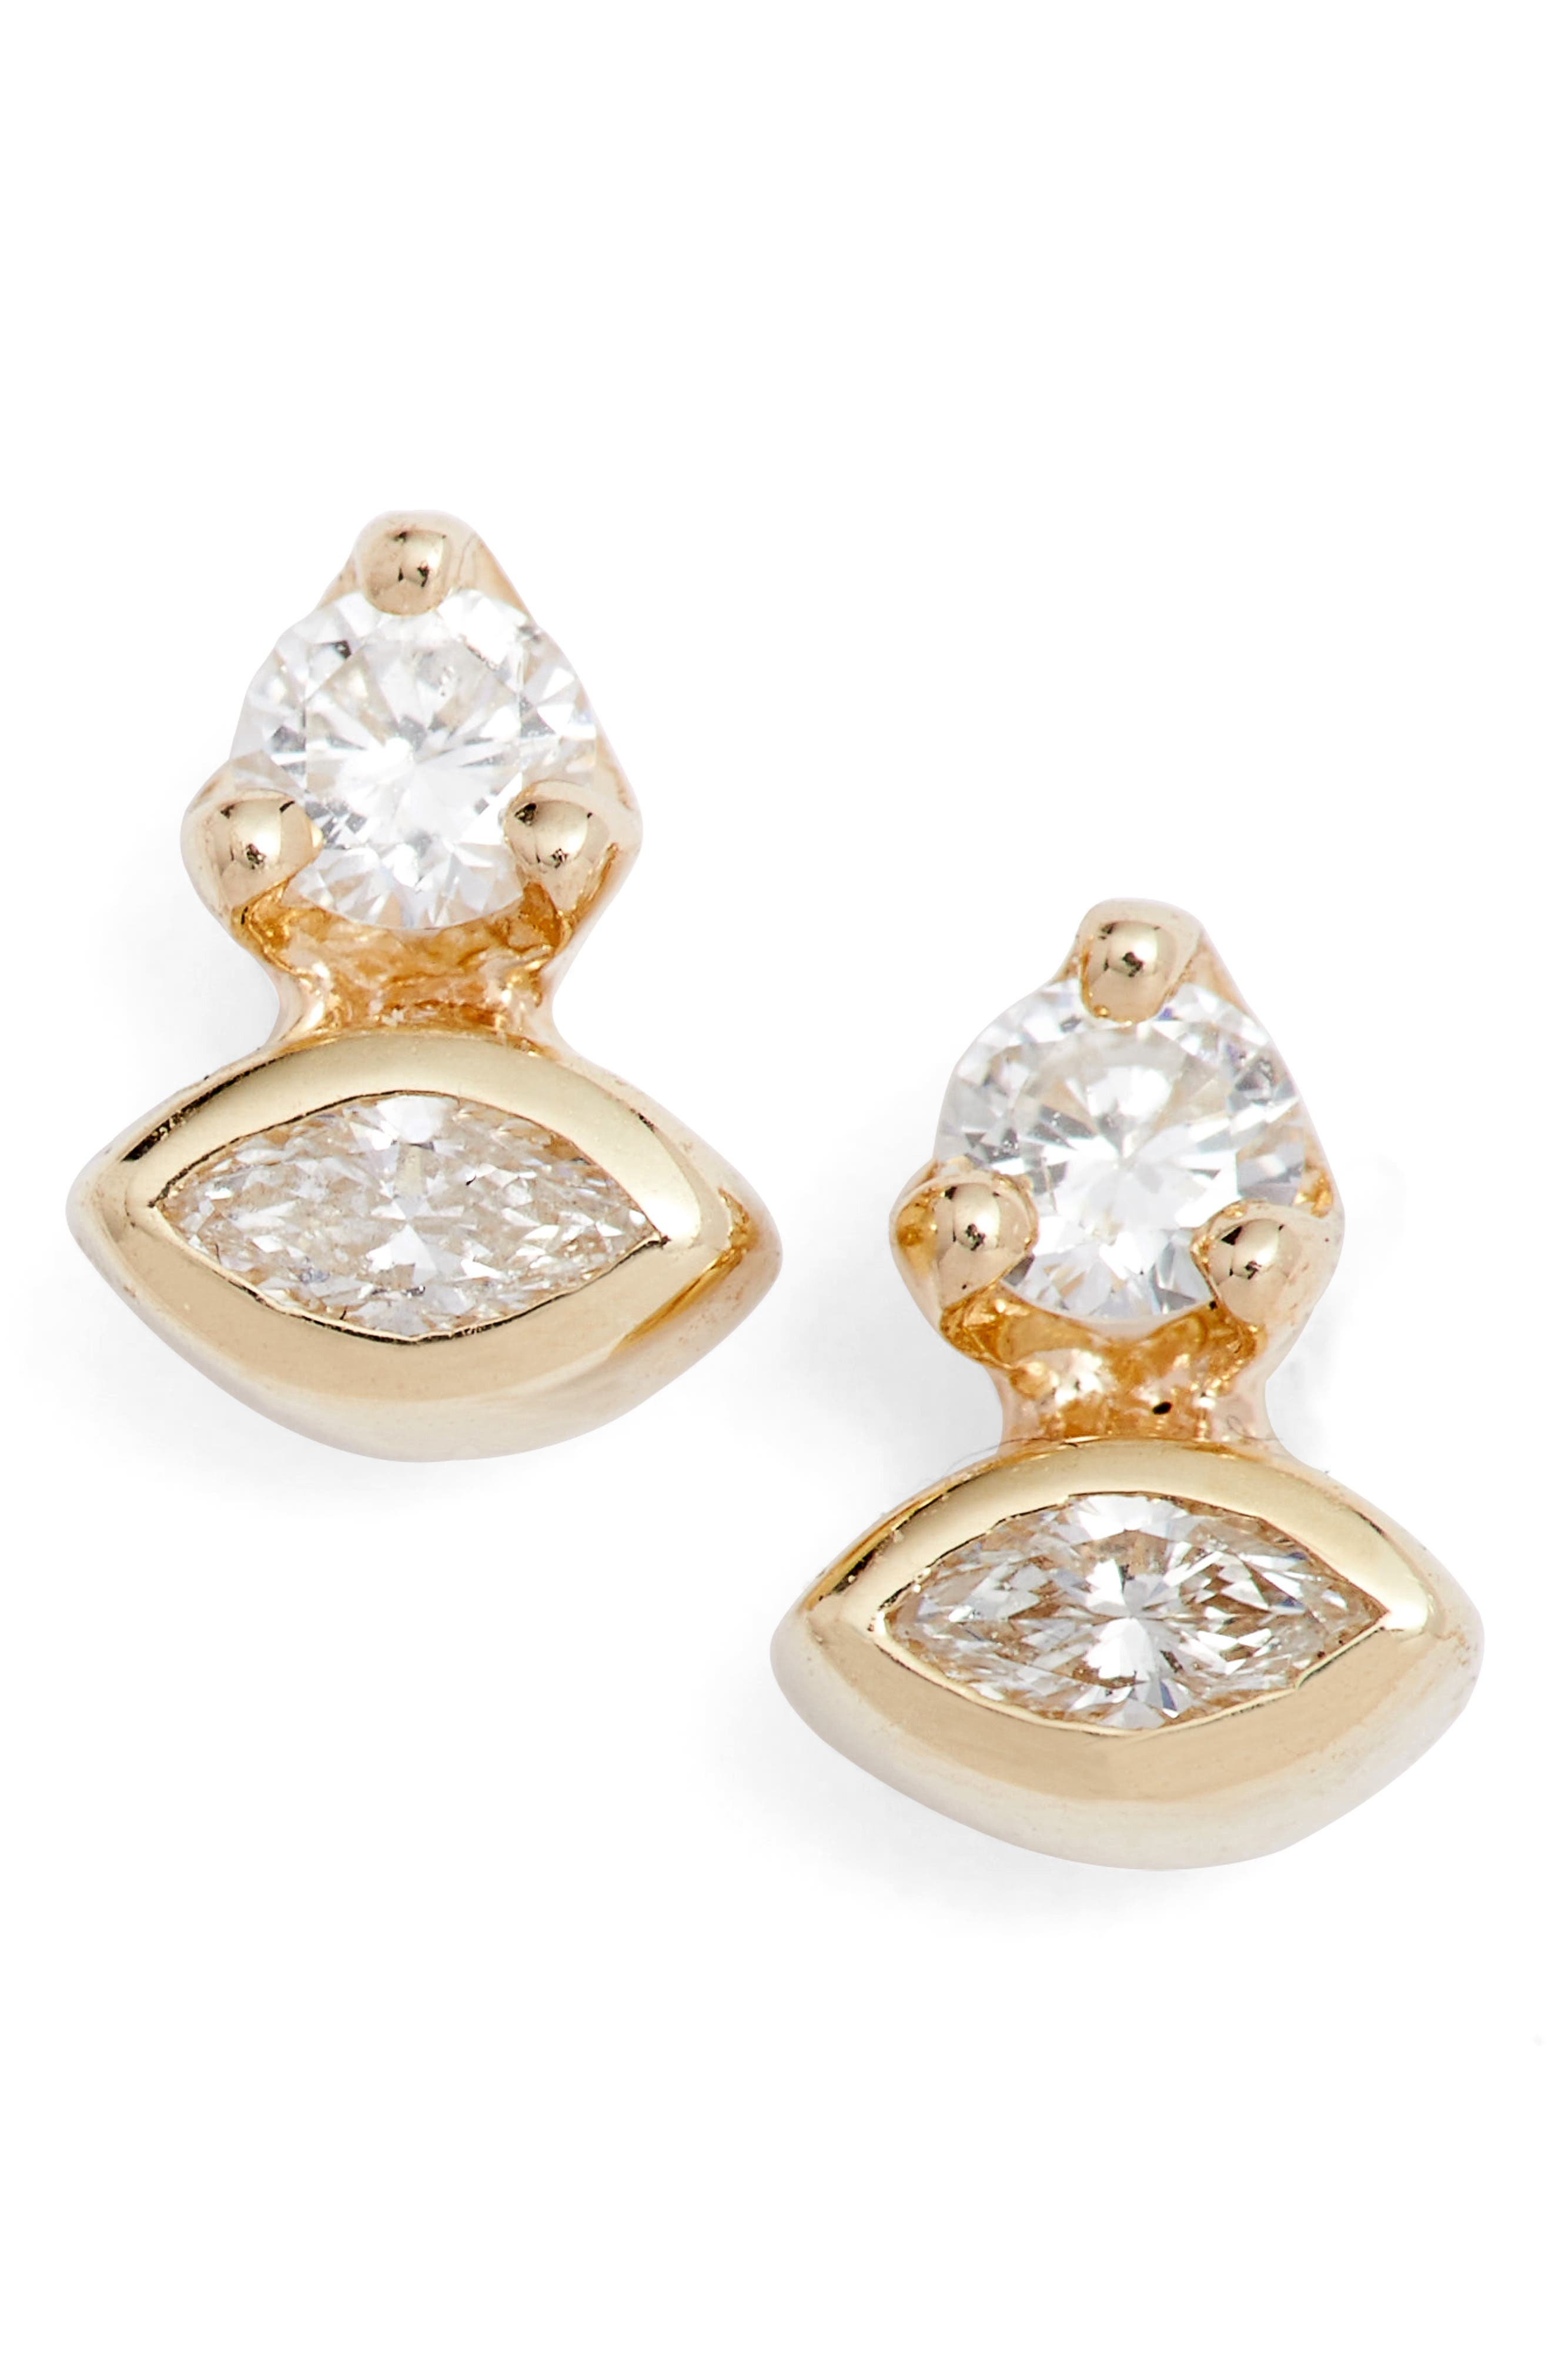 Diamond Cluster Stud Earrings,                             Main thumbnail 1, color,                             Yellow Gold